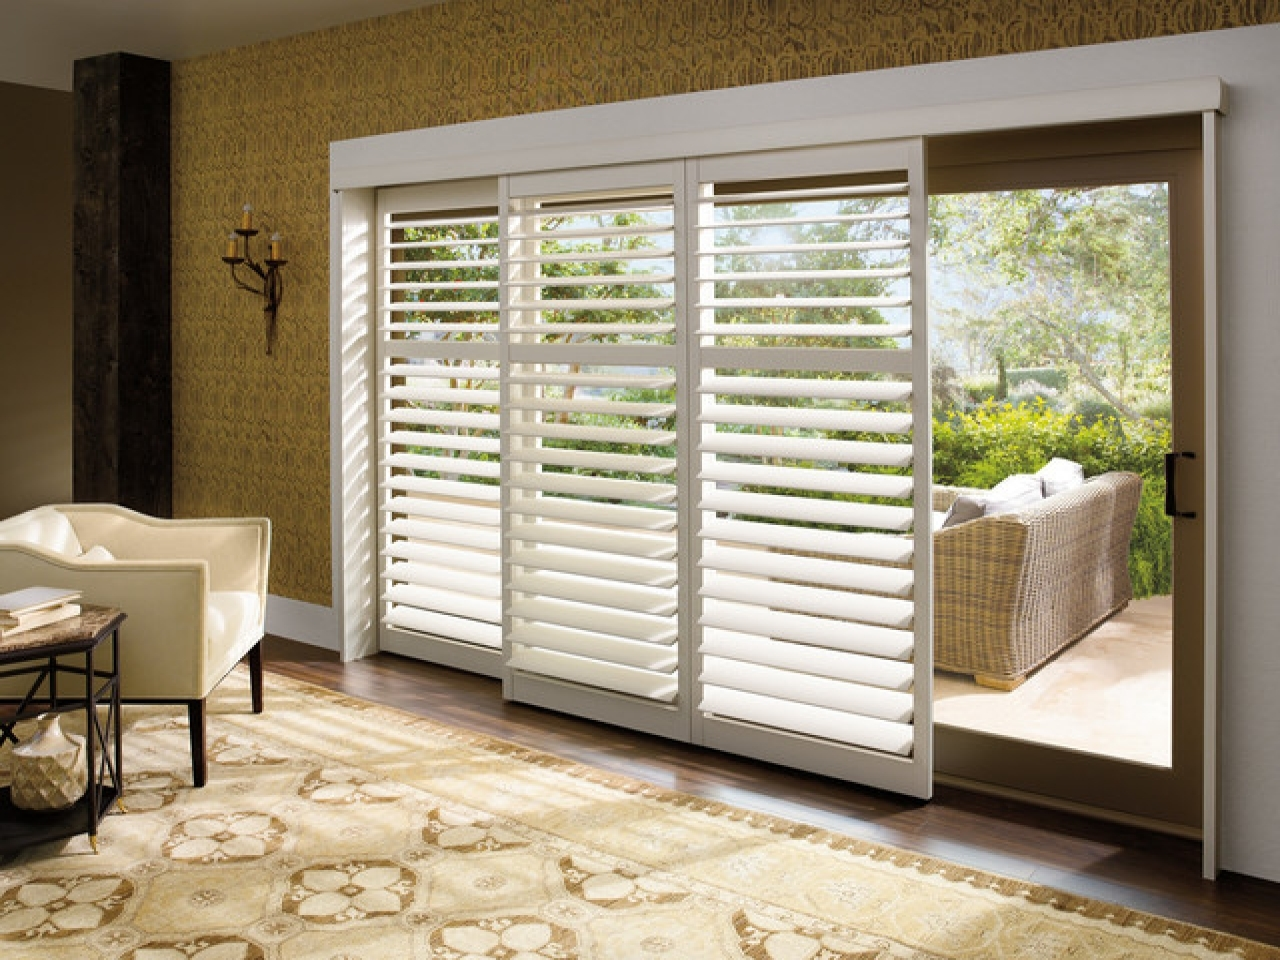 Shades For Sliding Glass Doorswindow treatments for sliding glass doors ideas tips